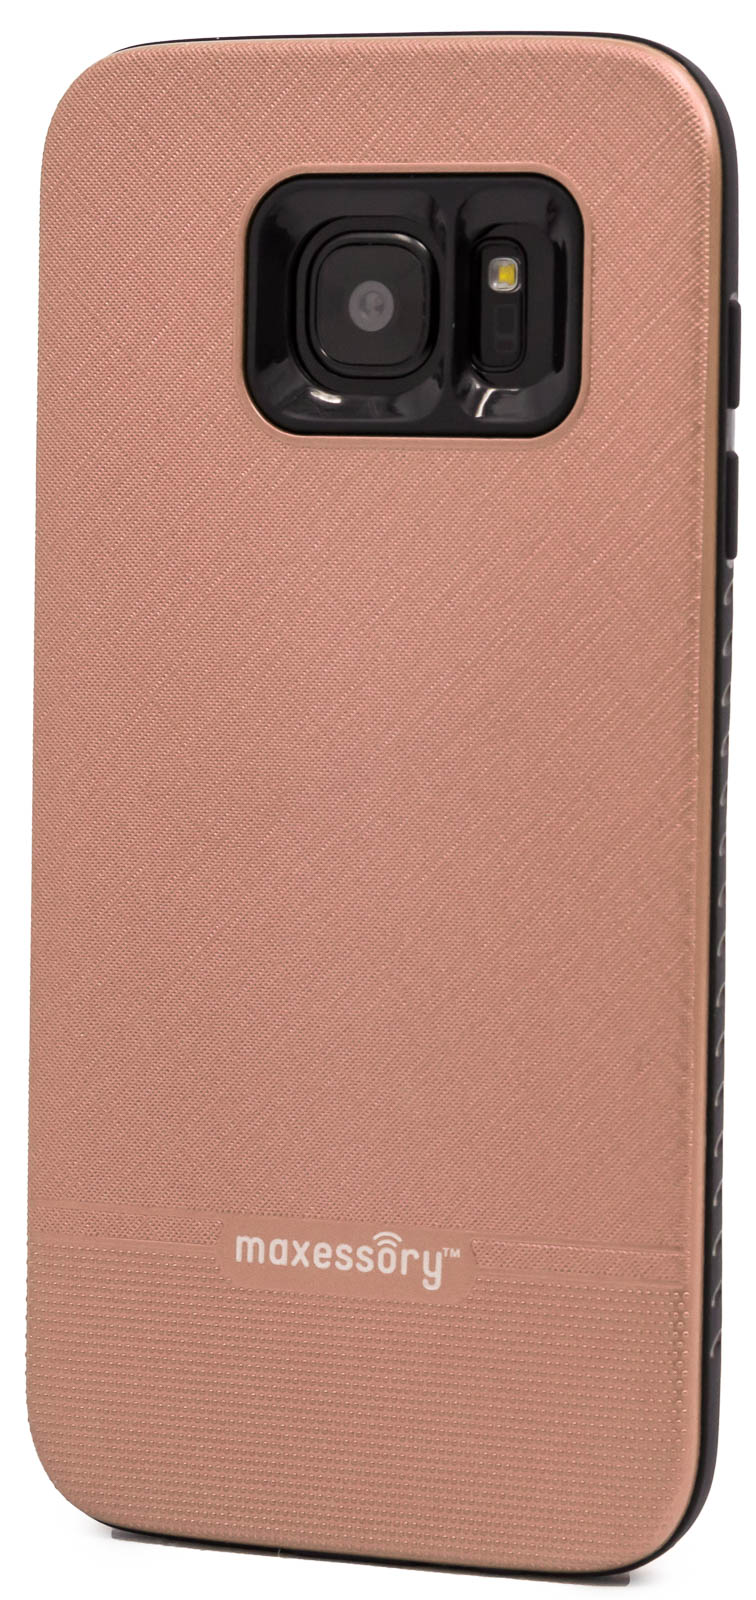 Samsung-Galaxy-S7-Edge-Case-Ultra-Thin-Hard-Body-Tactile-Shell-Cover thumbnail 22